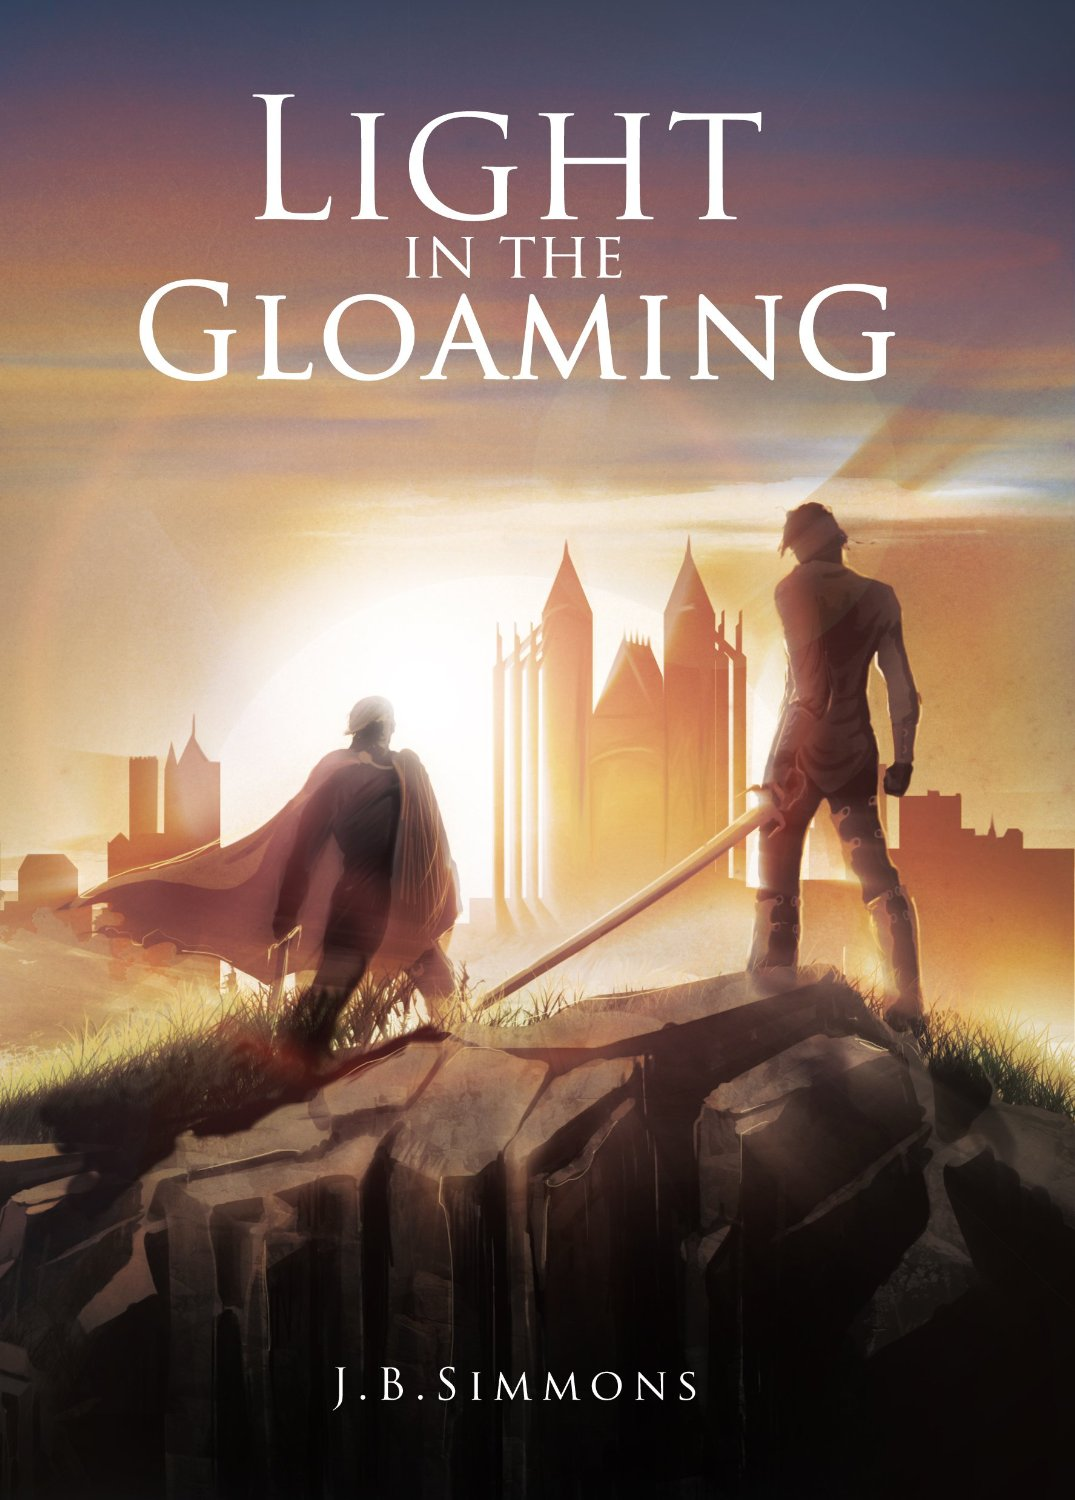 https://www.amazon.com/Light-Gloaming-J-B-Simmons-ebook/dp/B00E1W6E1C/